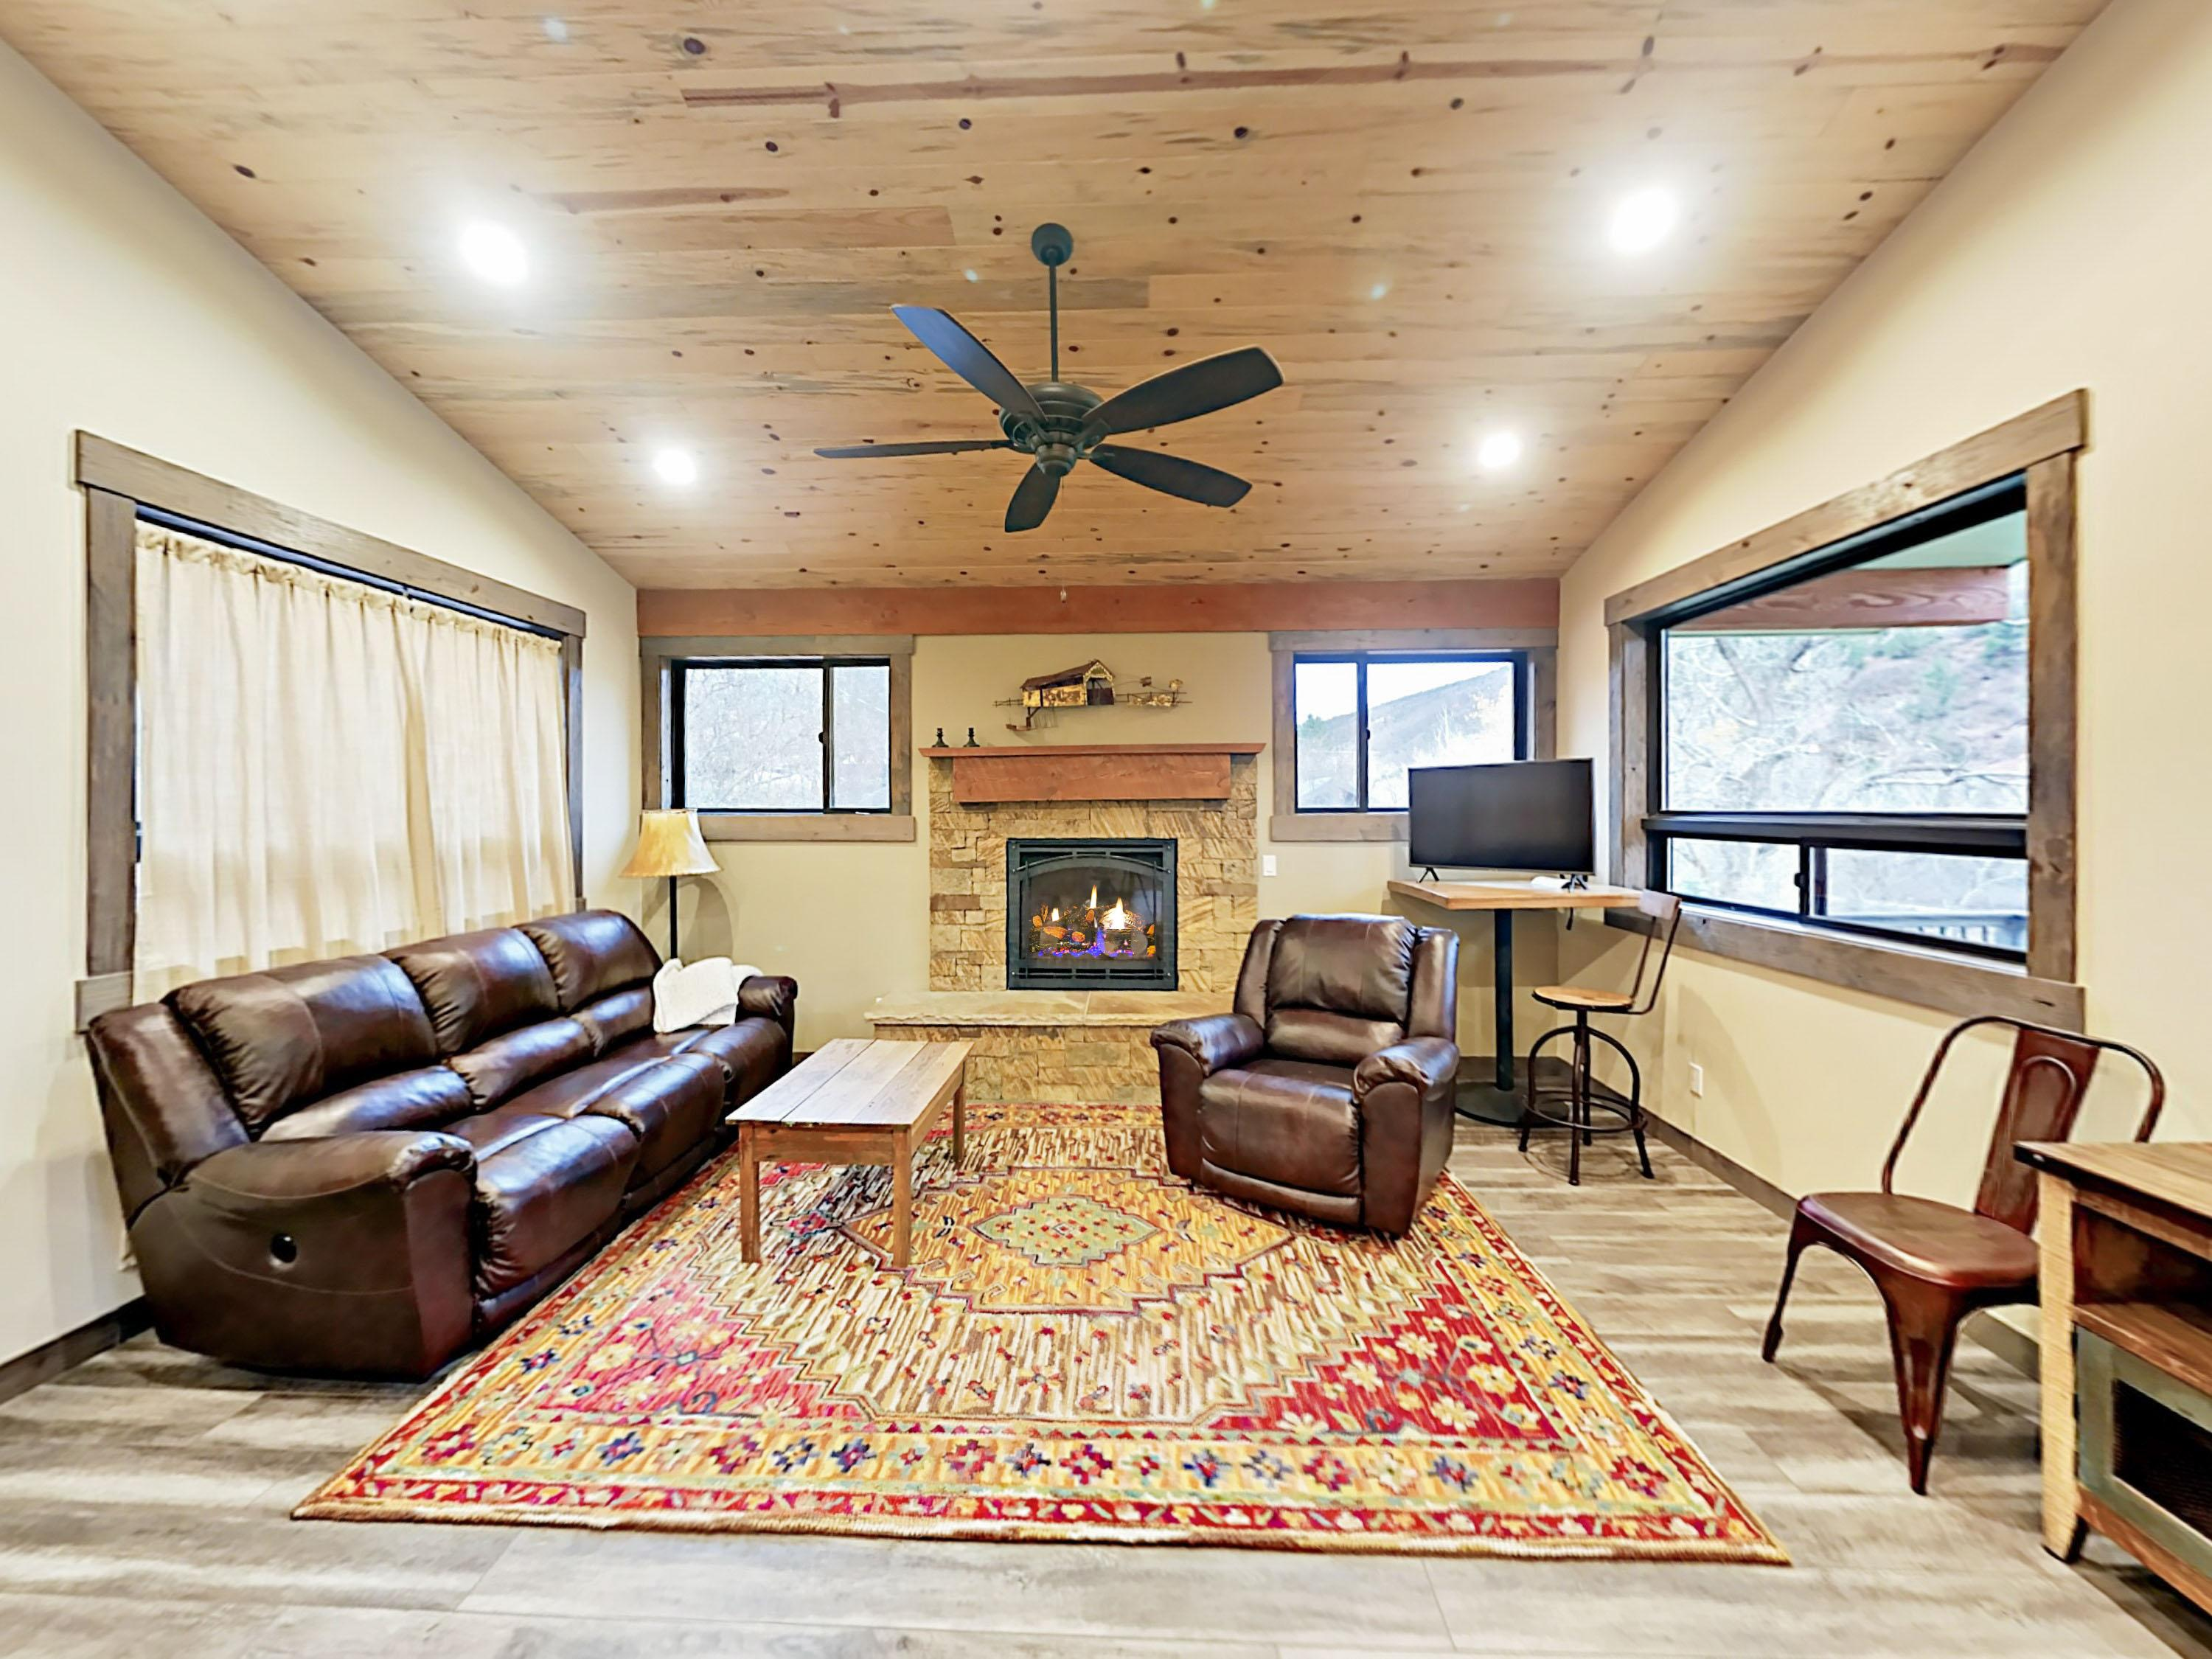 Welcome to Carbondale! Your rental is professionally managed by TurnKey Vacation Rentals. Make yourself at home in the living room, outfitted with a leather couch and an armchair around the fireplace.